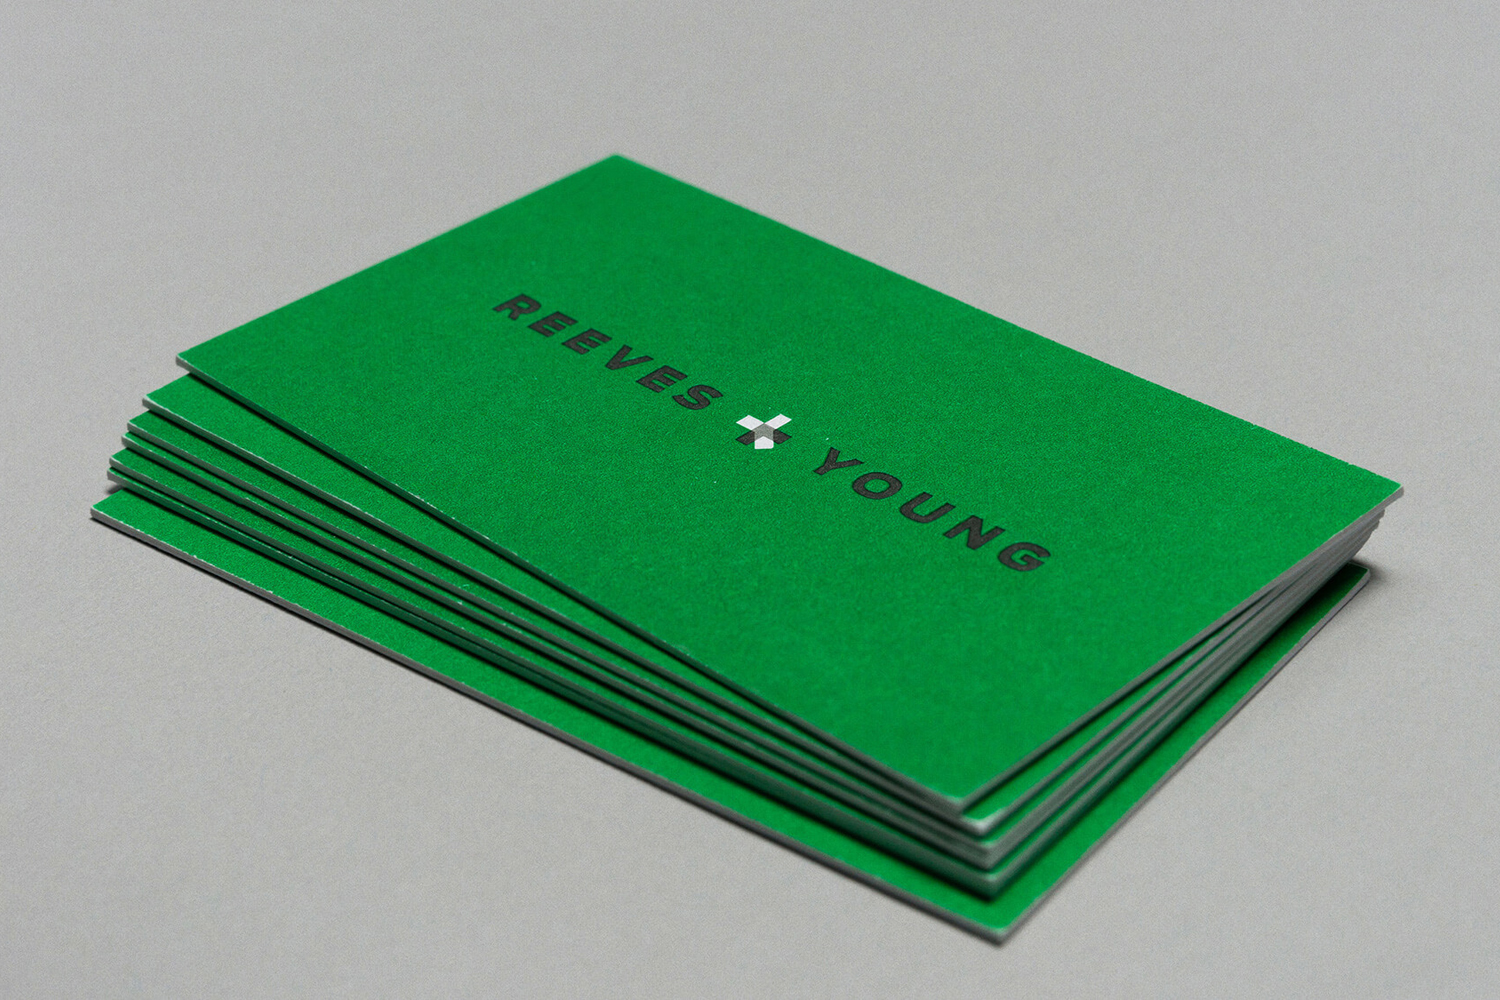 Bright spot green business cards for Reeves & Young designed by Matchstic